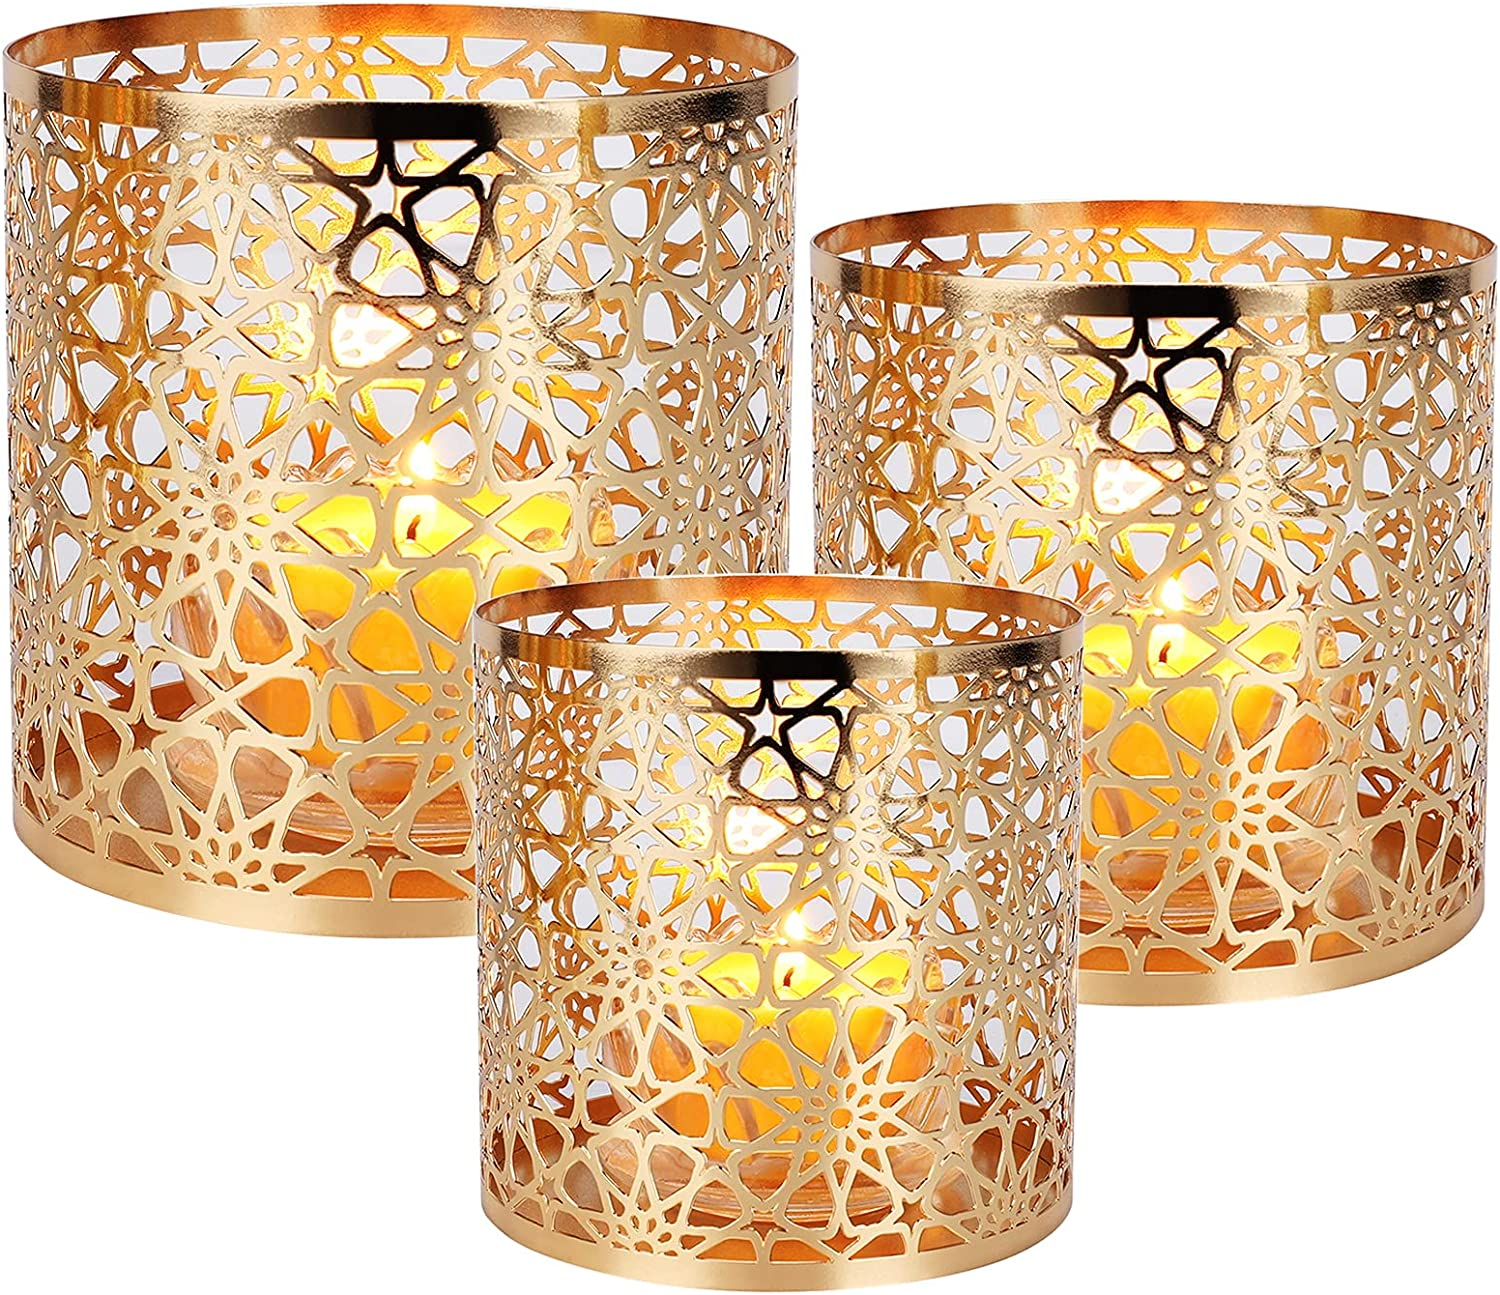 Metal Tea Free shipping anywhere in the nation Light Candle Holders Set of Champagne Hurrican favorite Gold 3